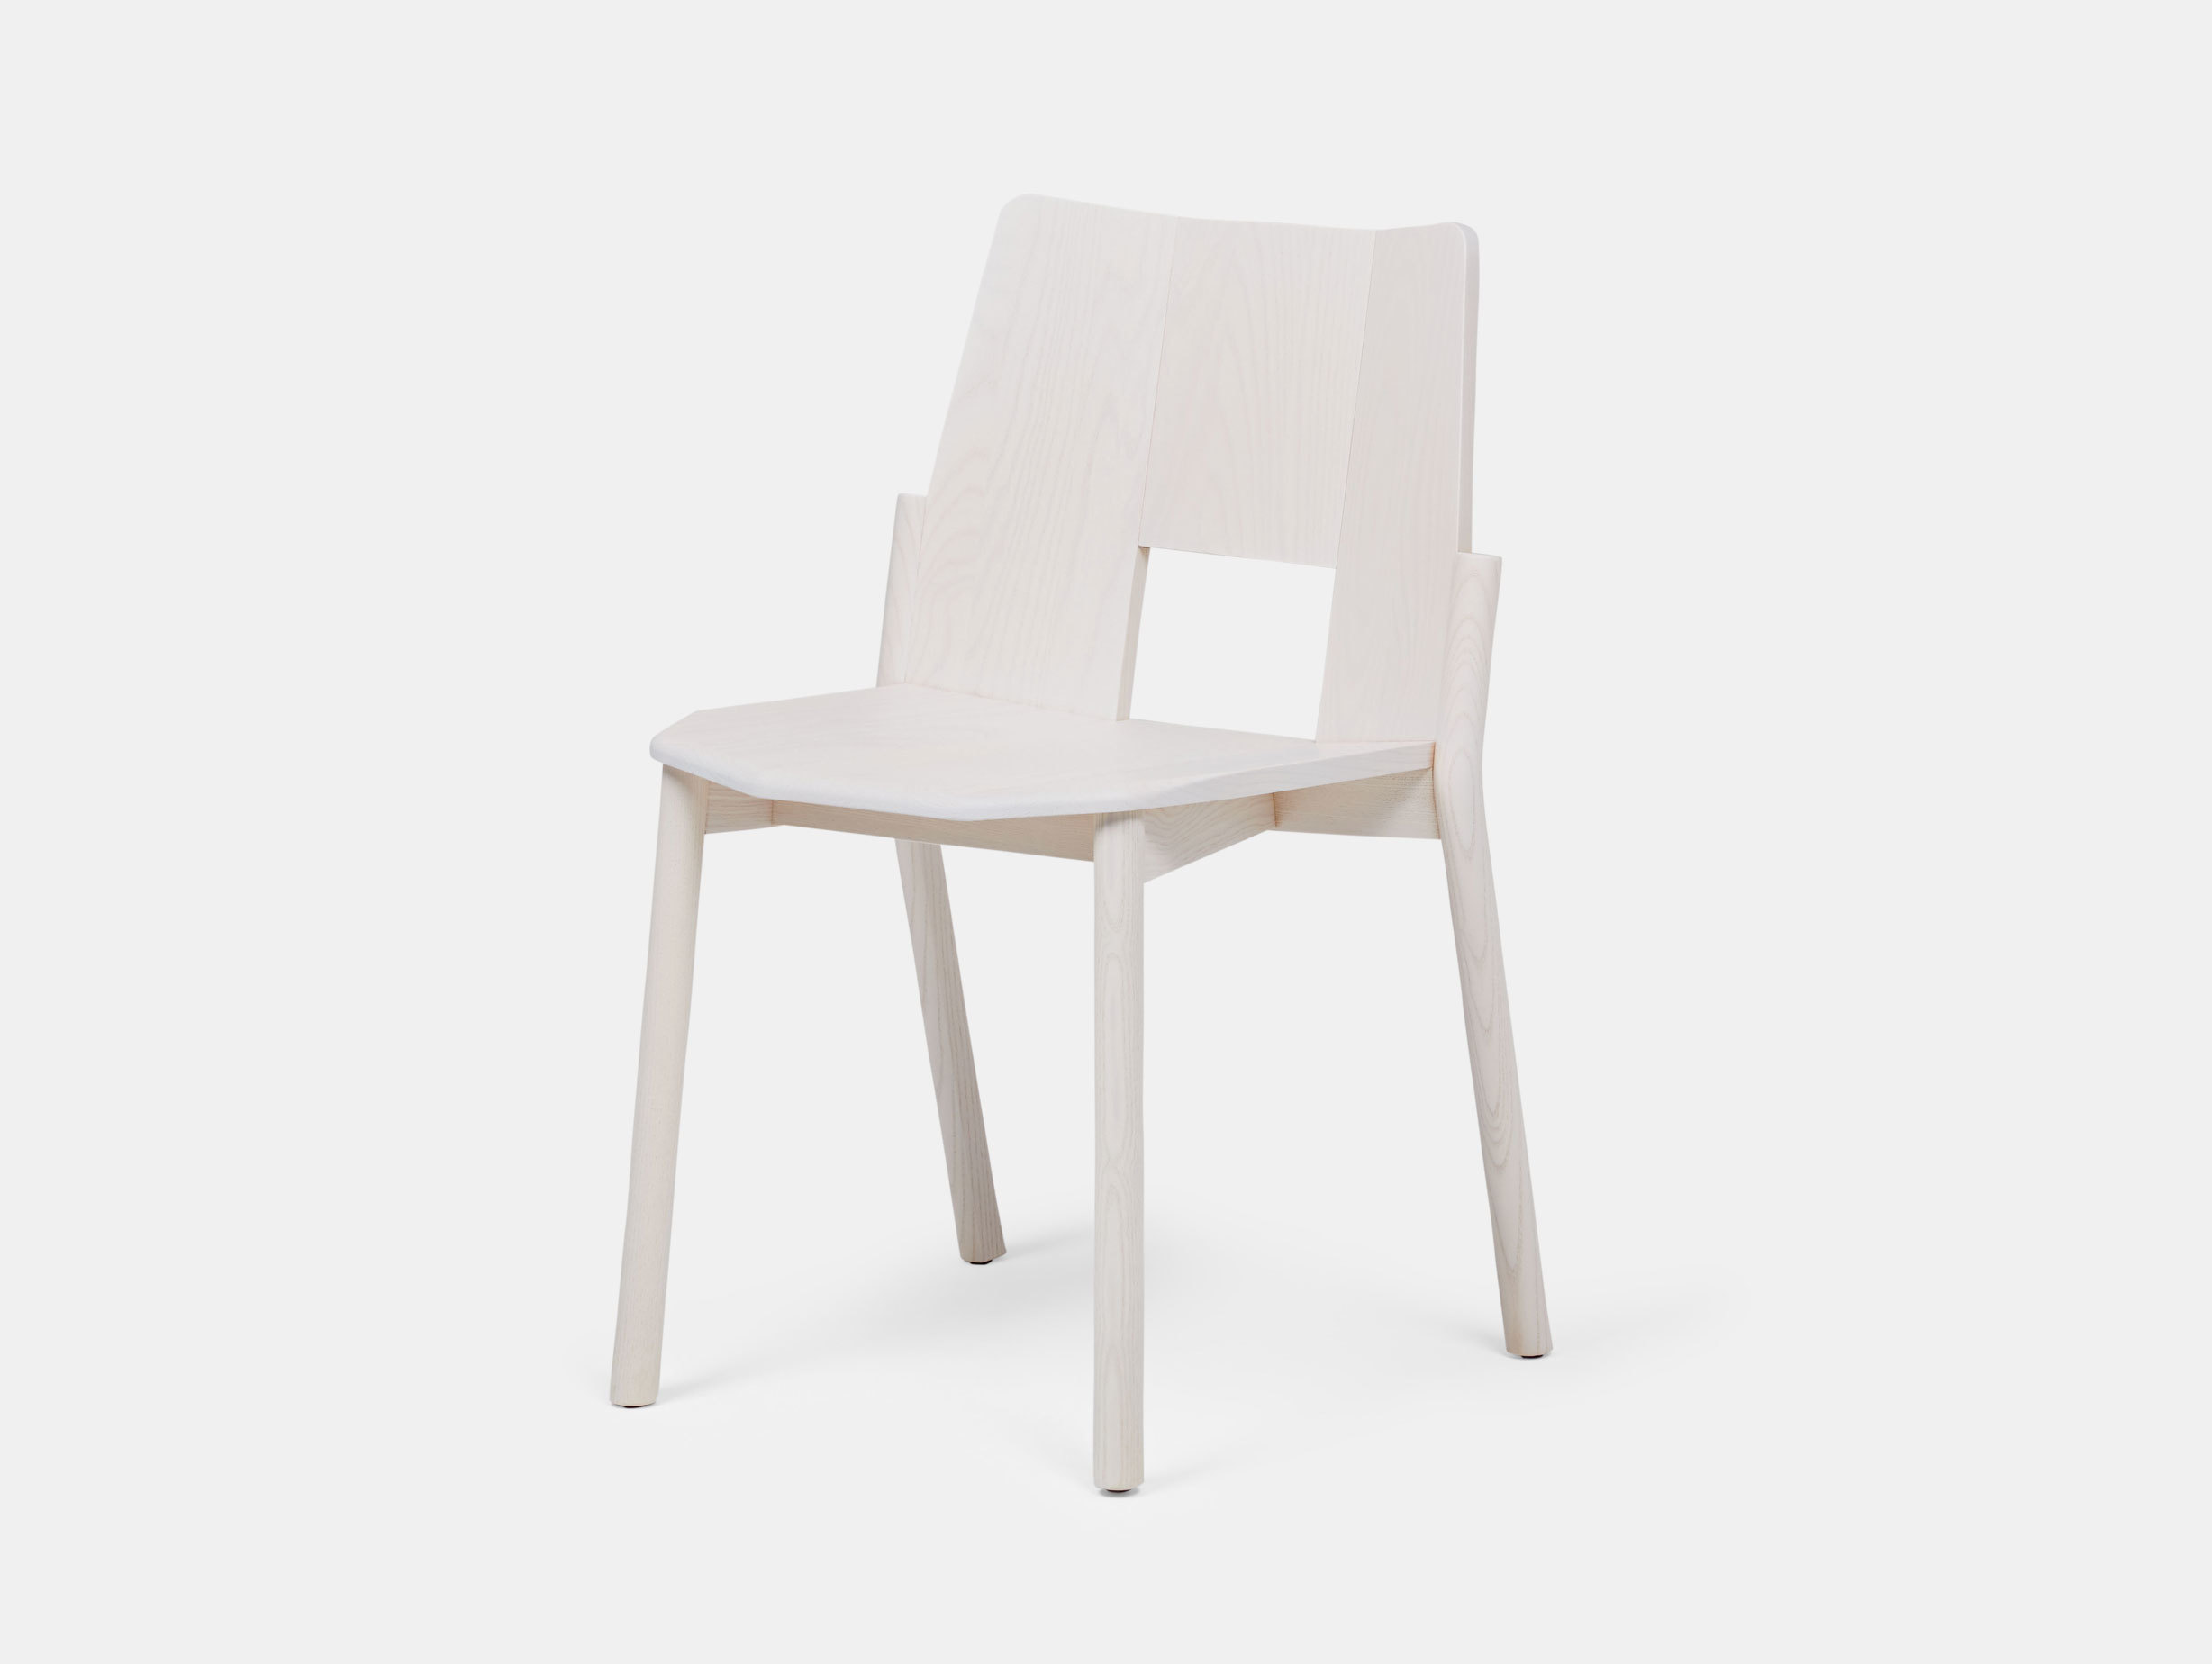 Mattiazzi Tronco Chair Ash White Industrial Facility